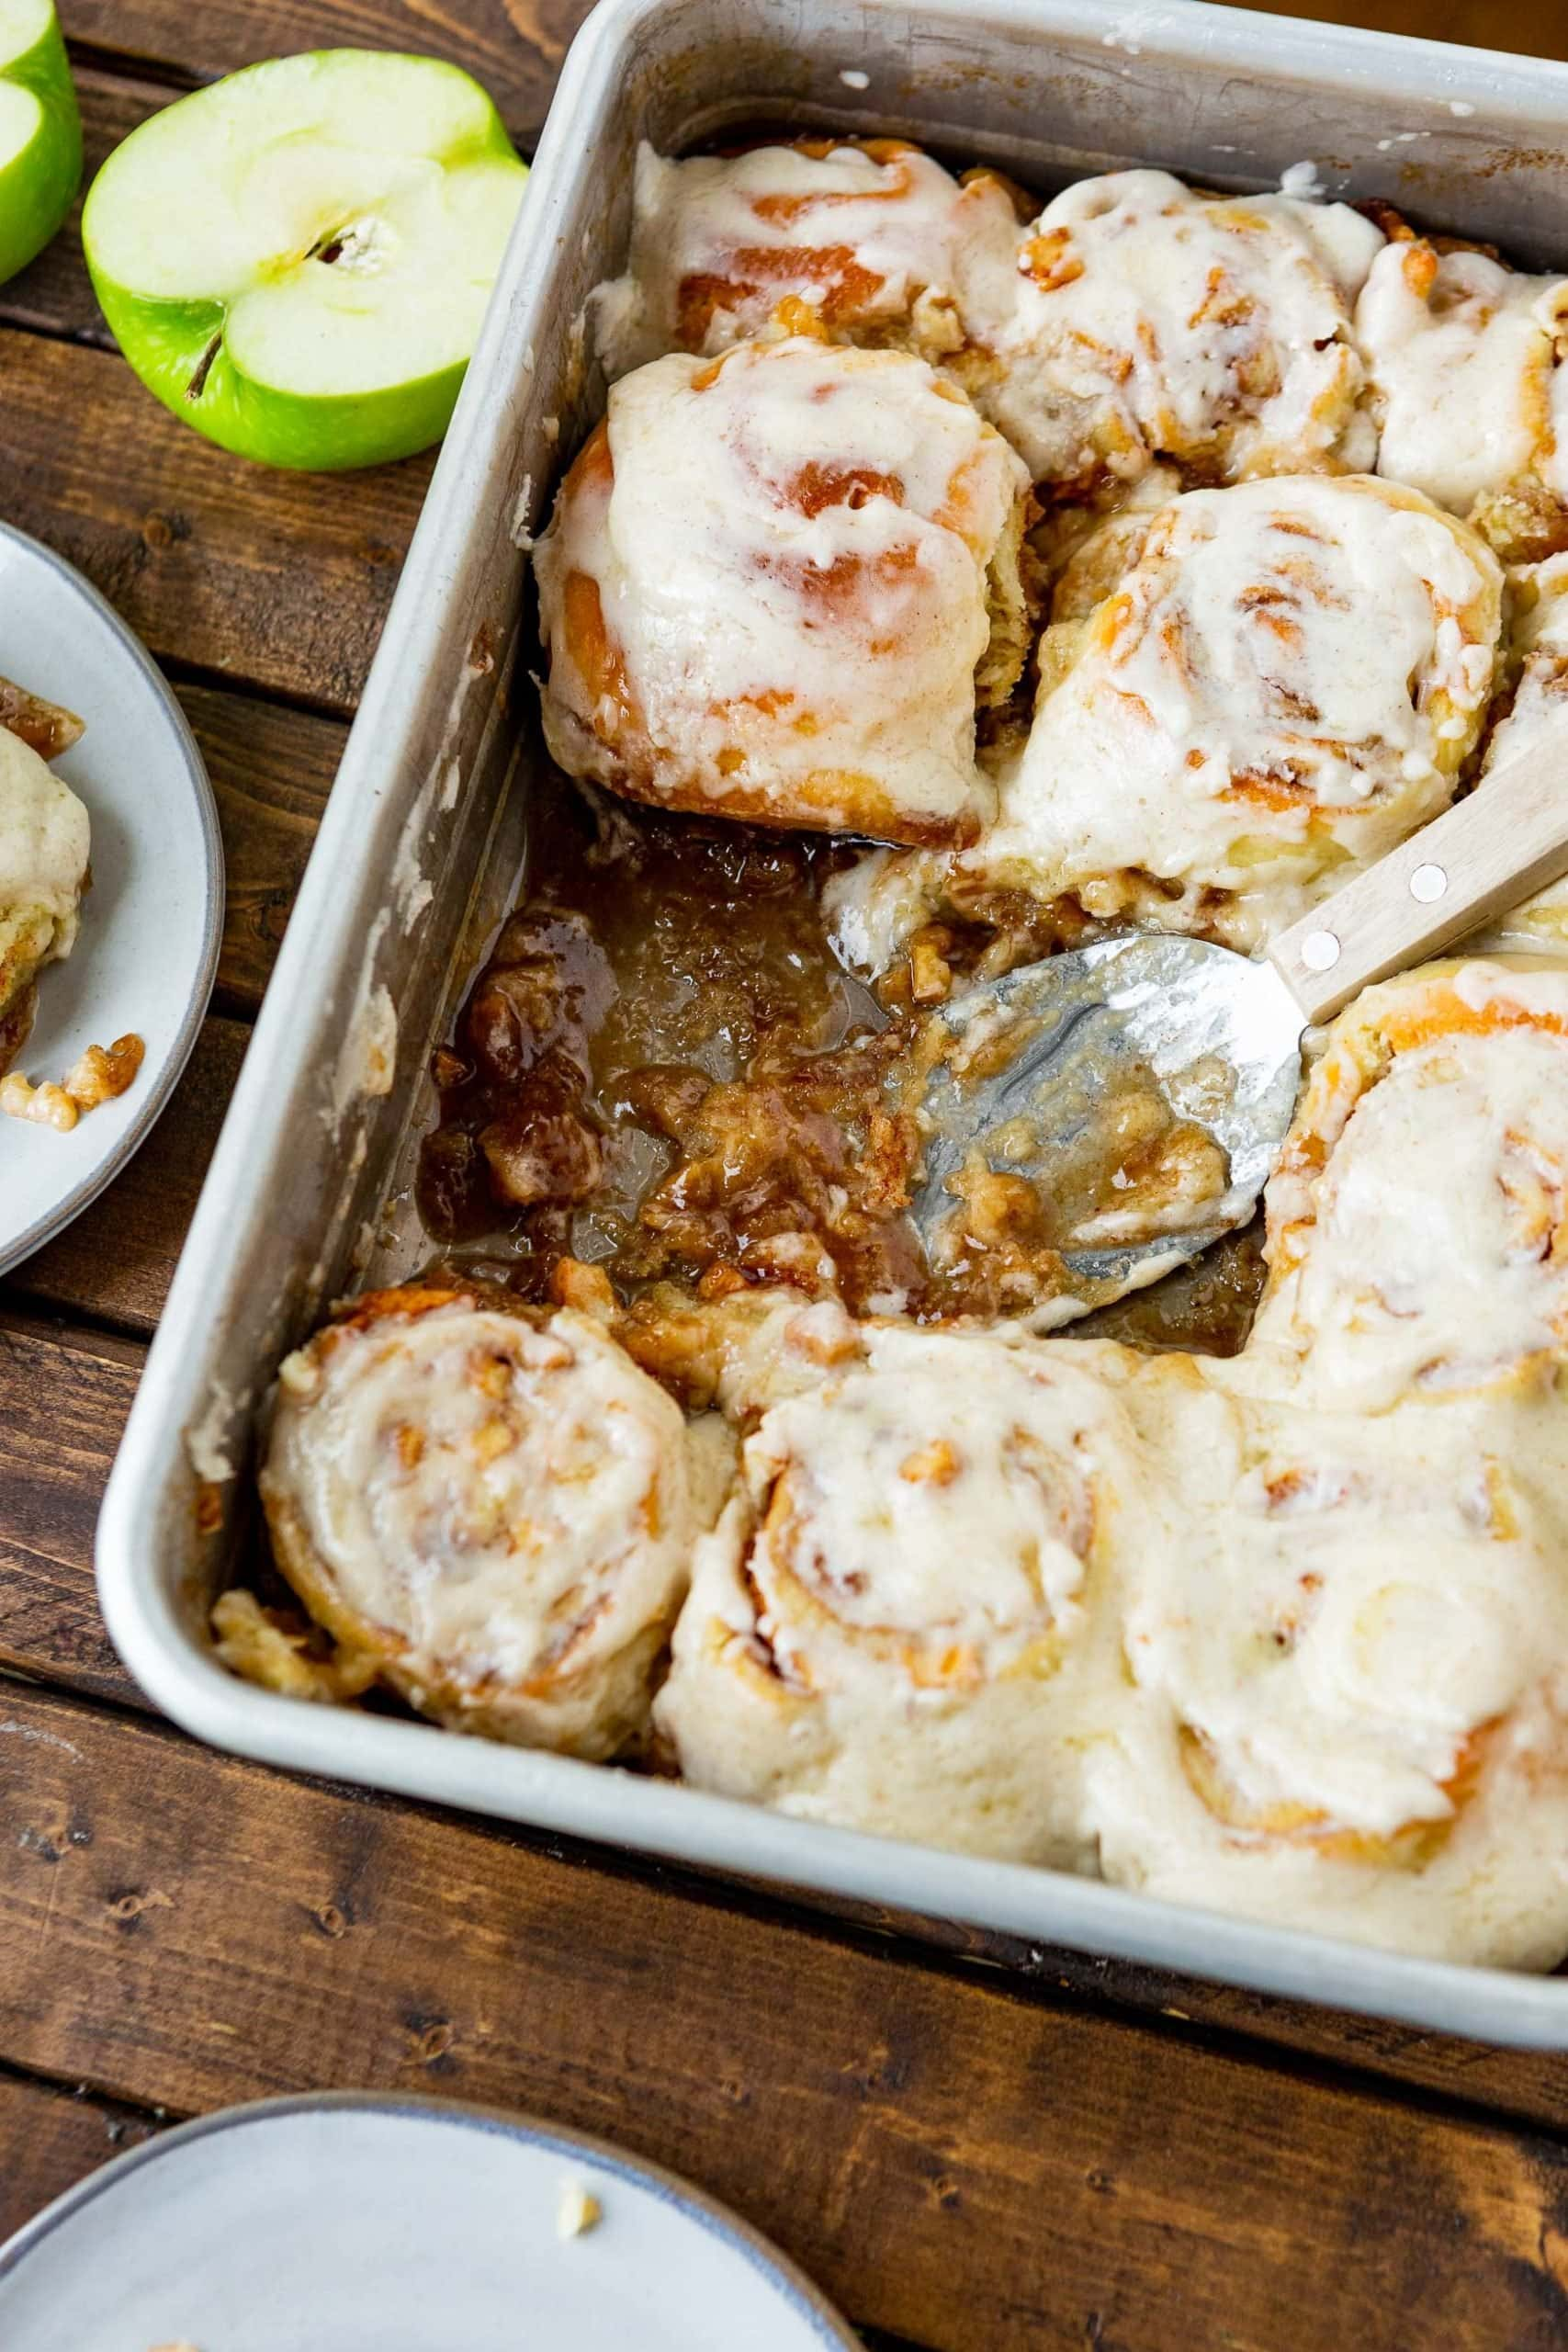 a photo of a 9x13 metal pan full of frosted golden cinnamon rolls with two cinnamon rolls missing and a serving spatula sitting in their place in the pan.